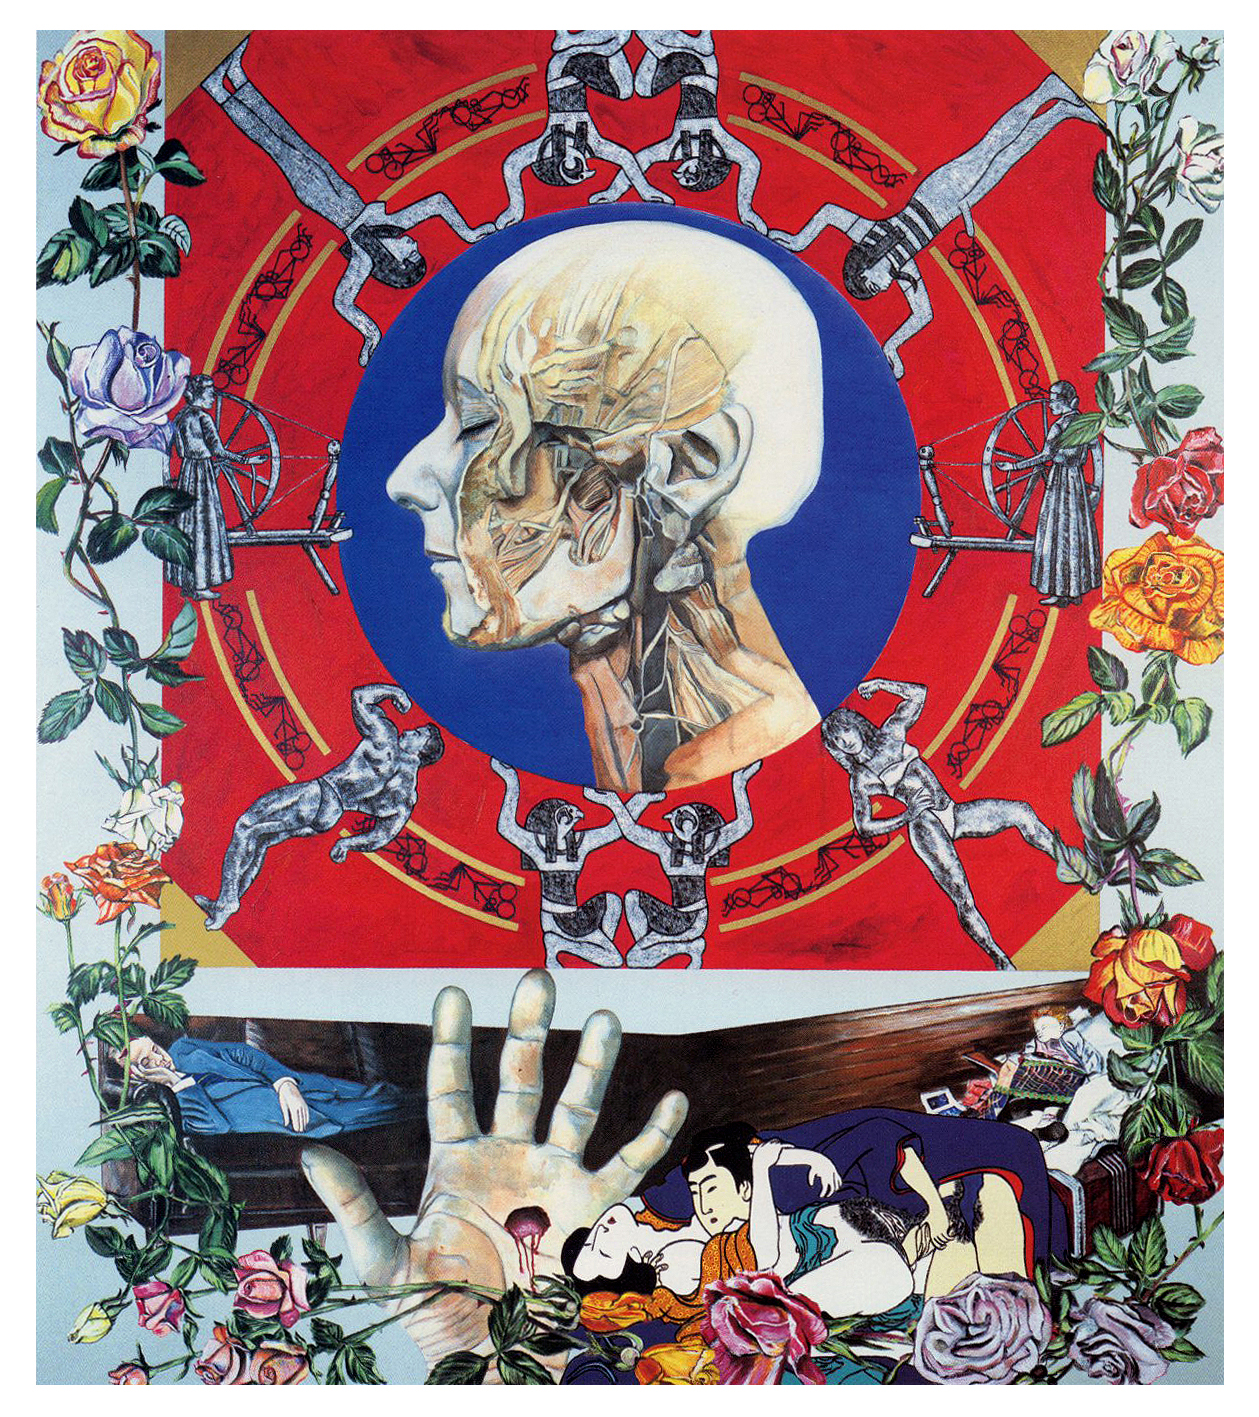 Carole Caroompas Fairy Tales: Briar Rose (Sleeping Beauty), 1989, acrylic on canvas, 96 x 84 inches